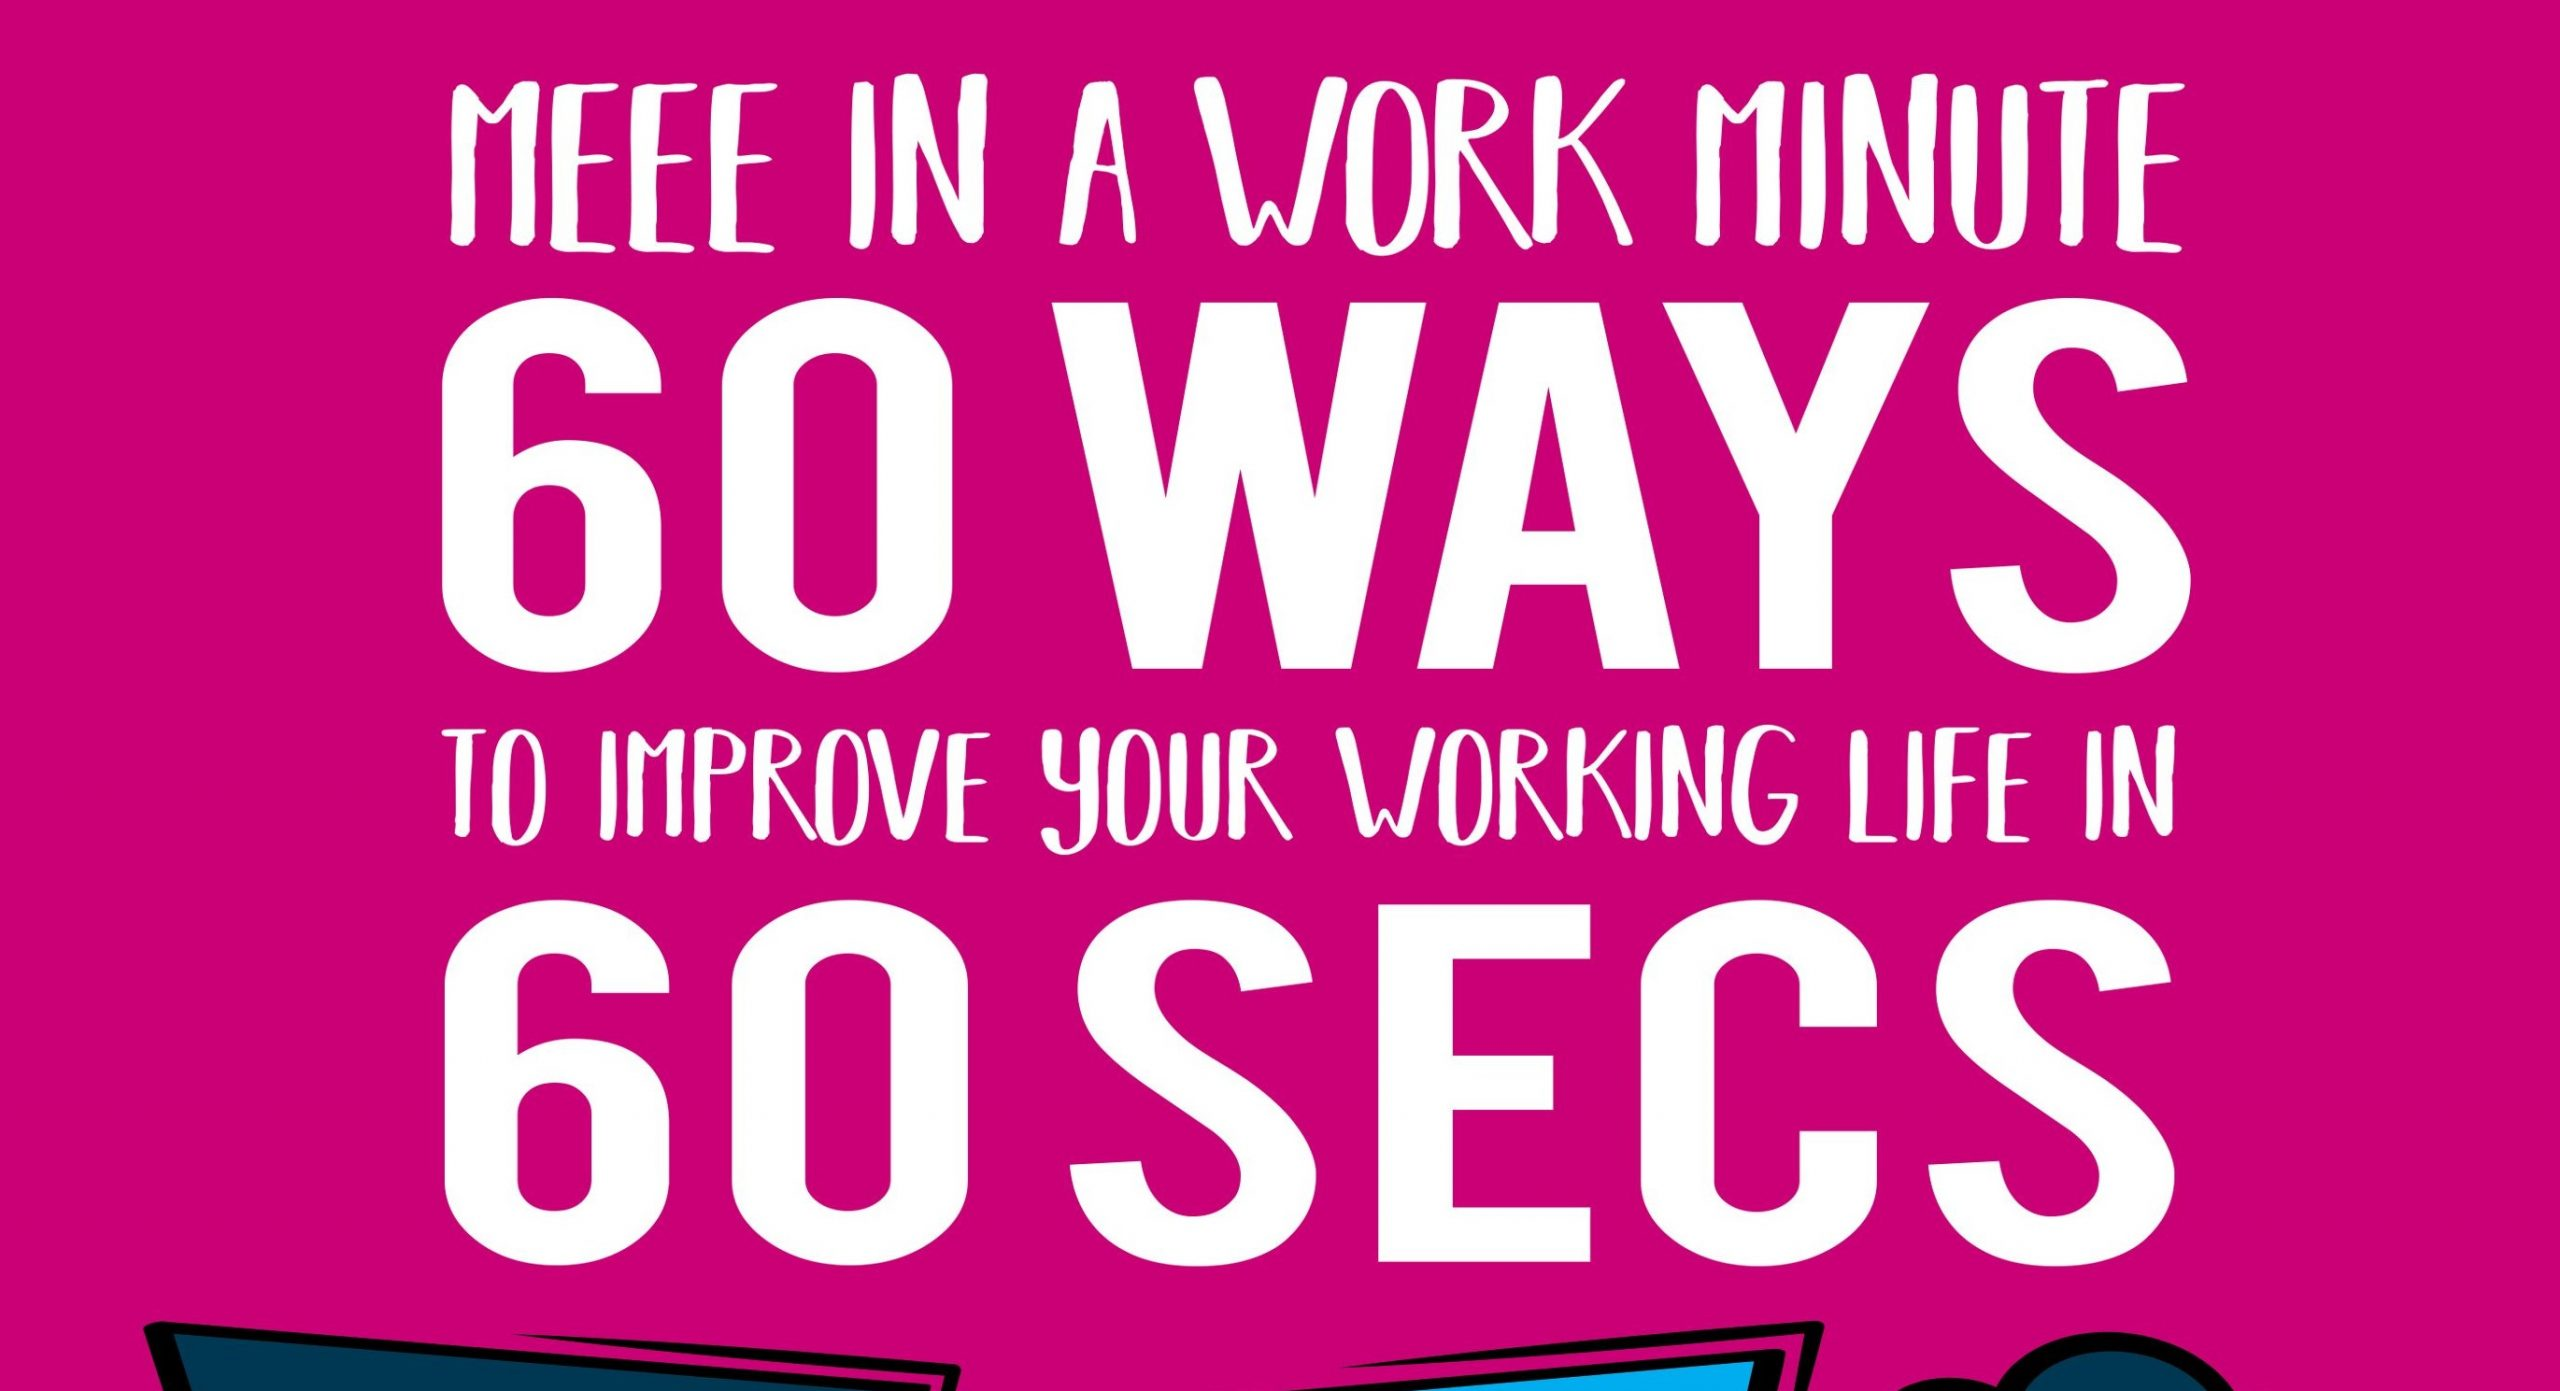 60 ways to improve your work-life in 60 seconds